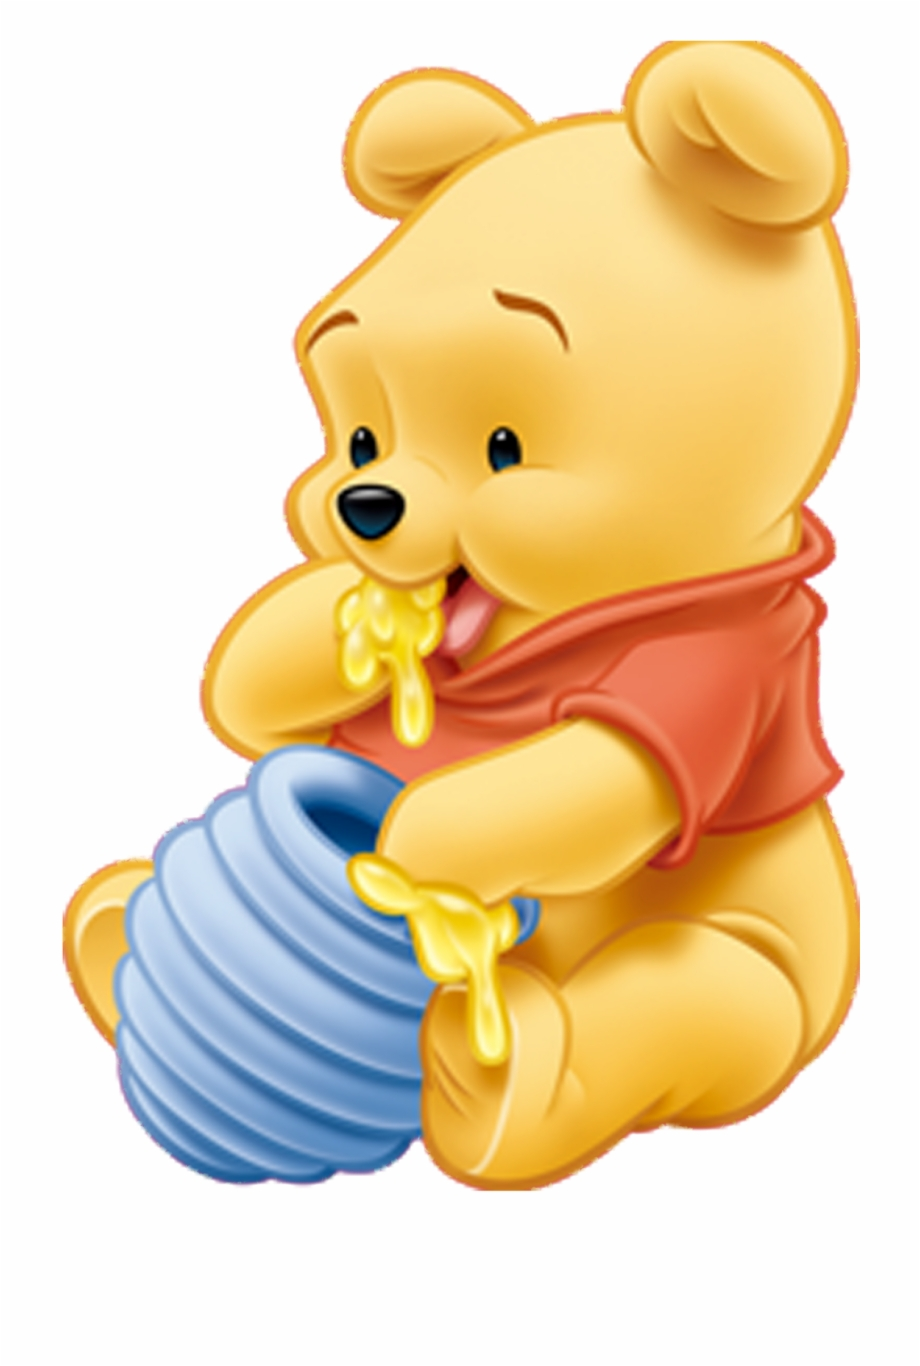 Free baby winnie the pooh clipart banner royalty free download Winnie Pooh - Baby Winnie The Pooh Clipart {#41744} - Pngtube banner royalty free download